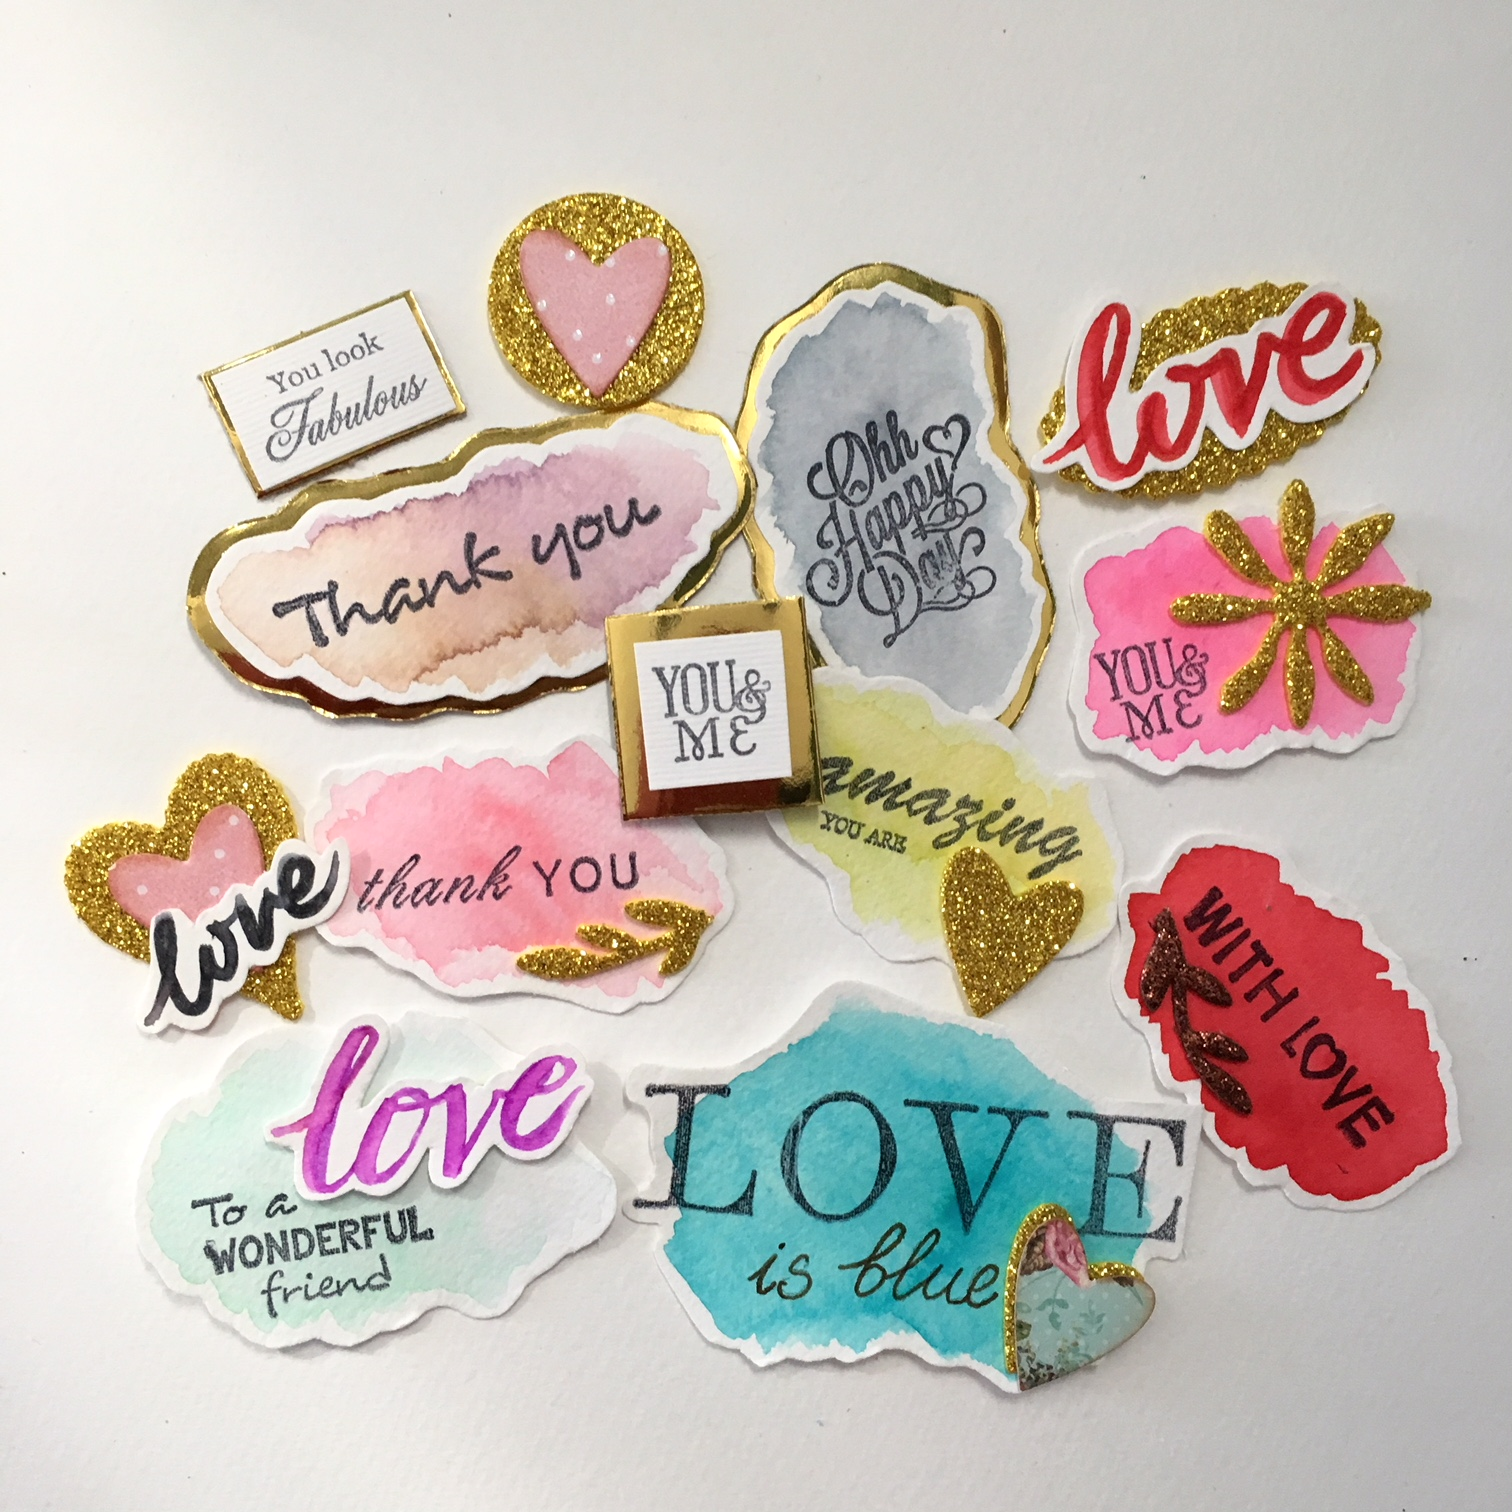 scrapbook embellishments in blue, pink, red and golden